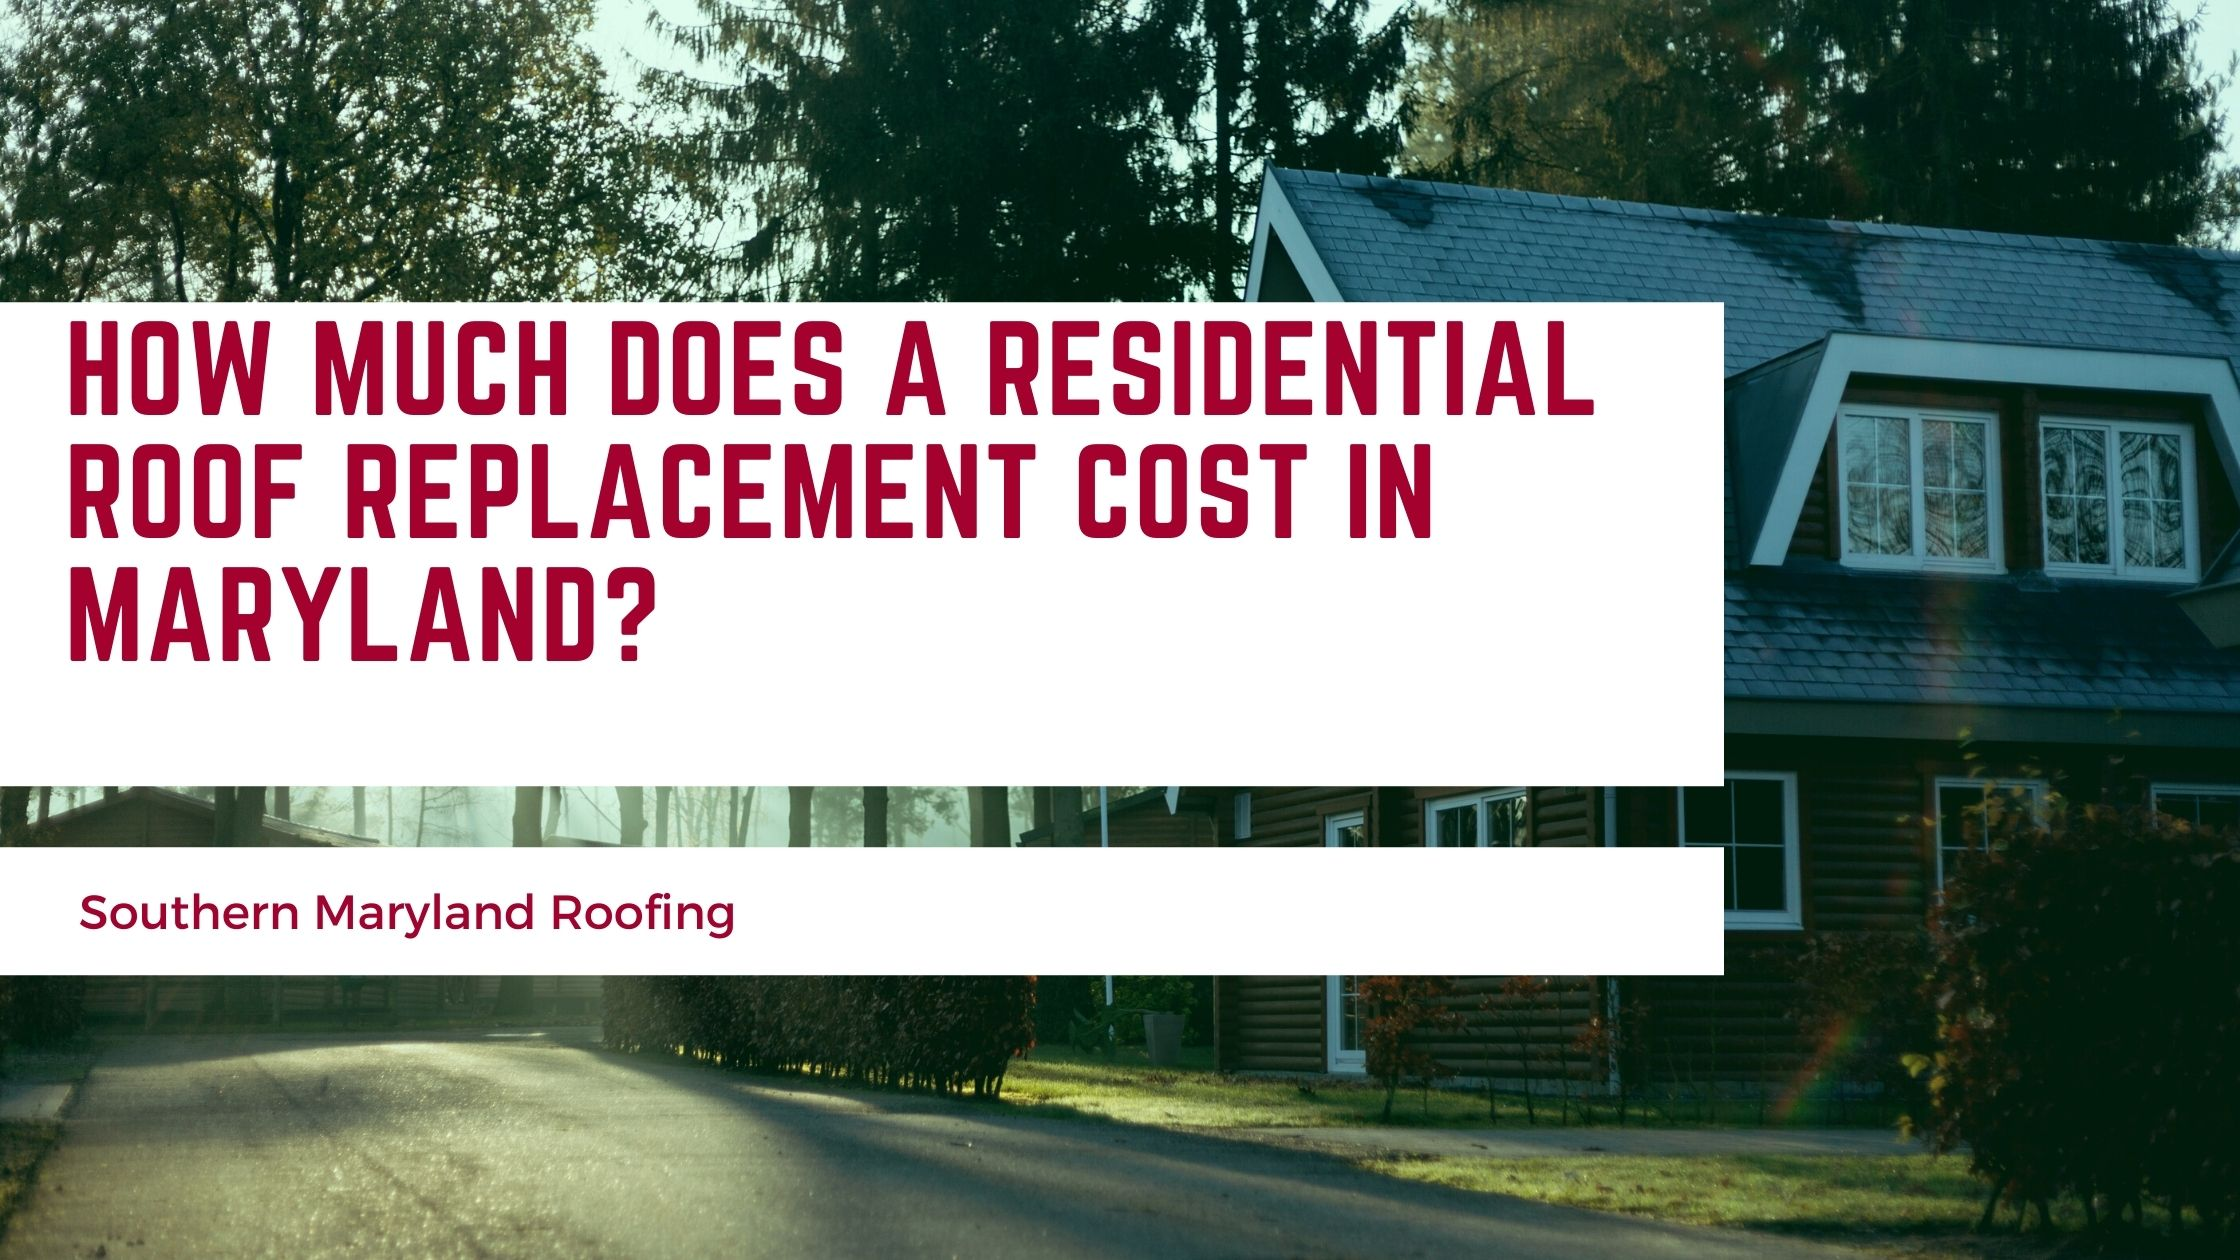 How Much Does a Residential Roof Replacement Cost in Maryland?